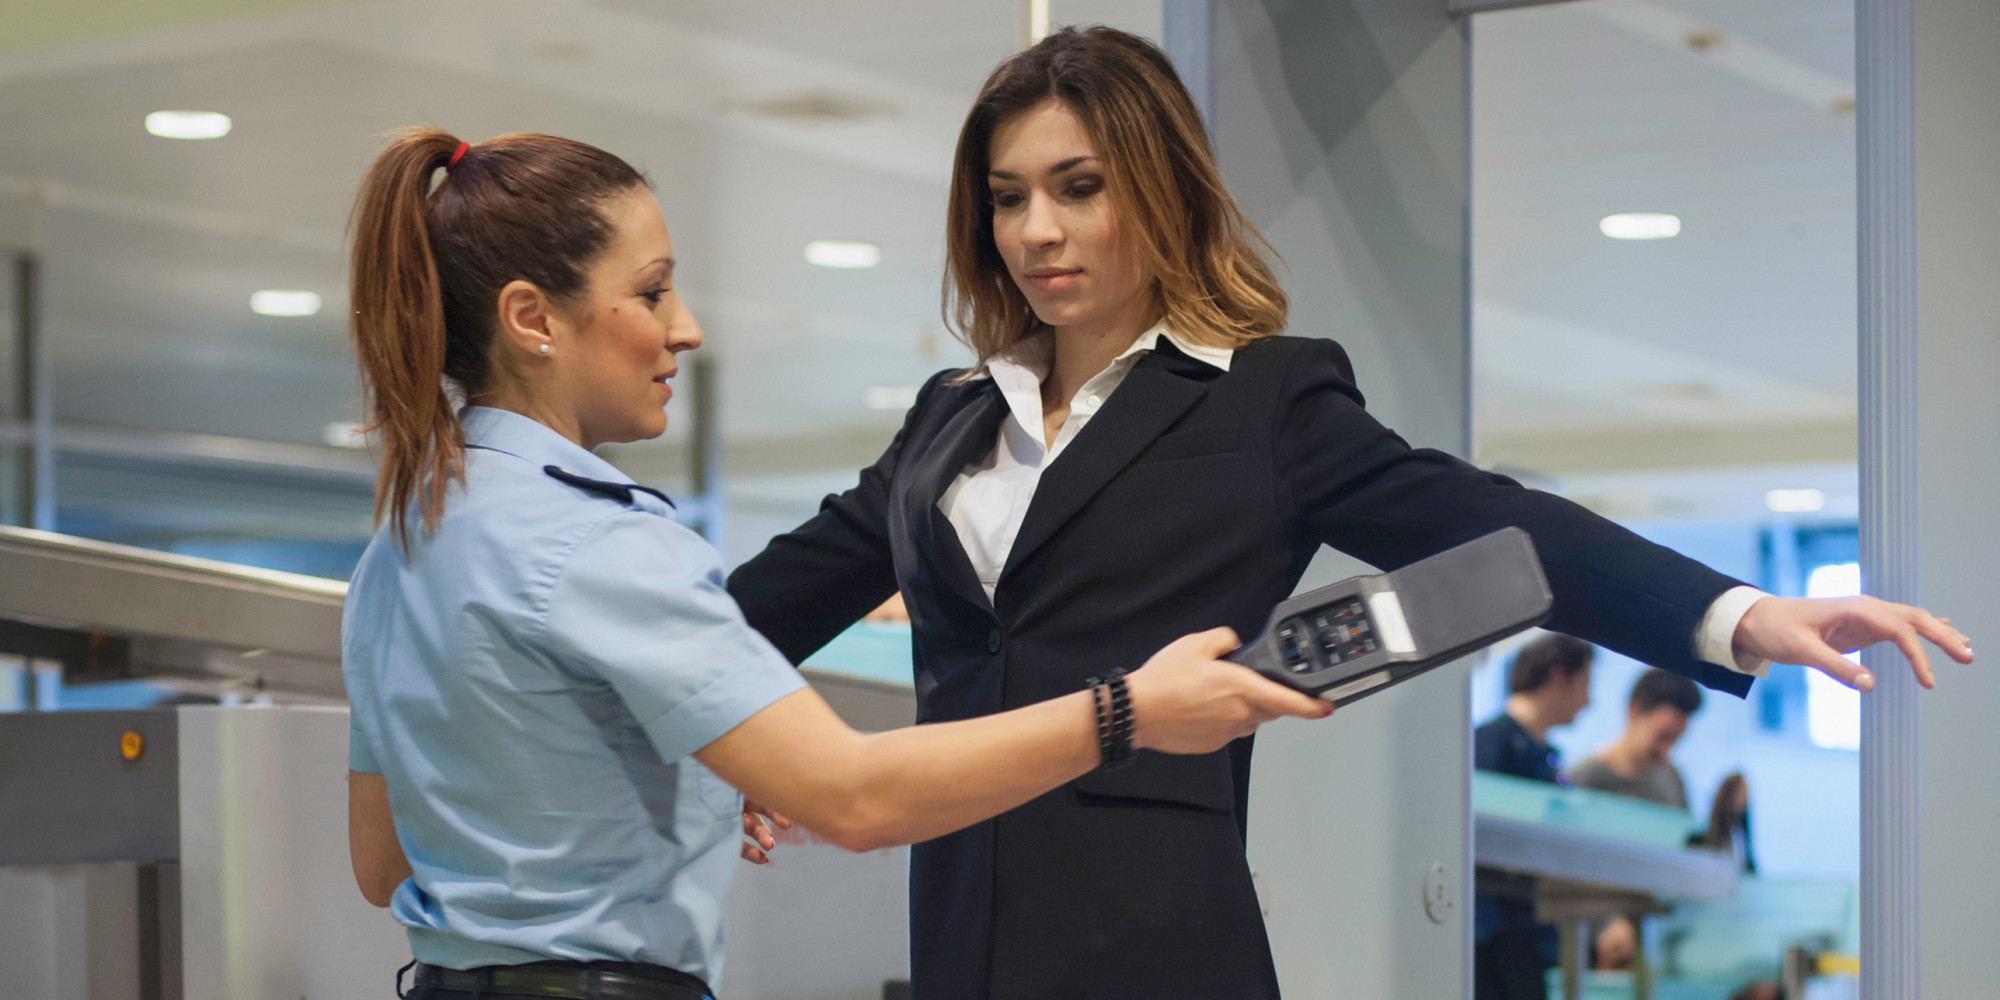 Woman-Security-Check.jpg